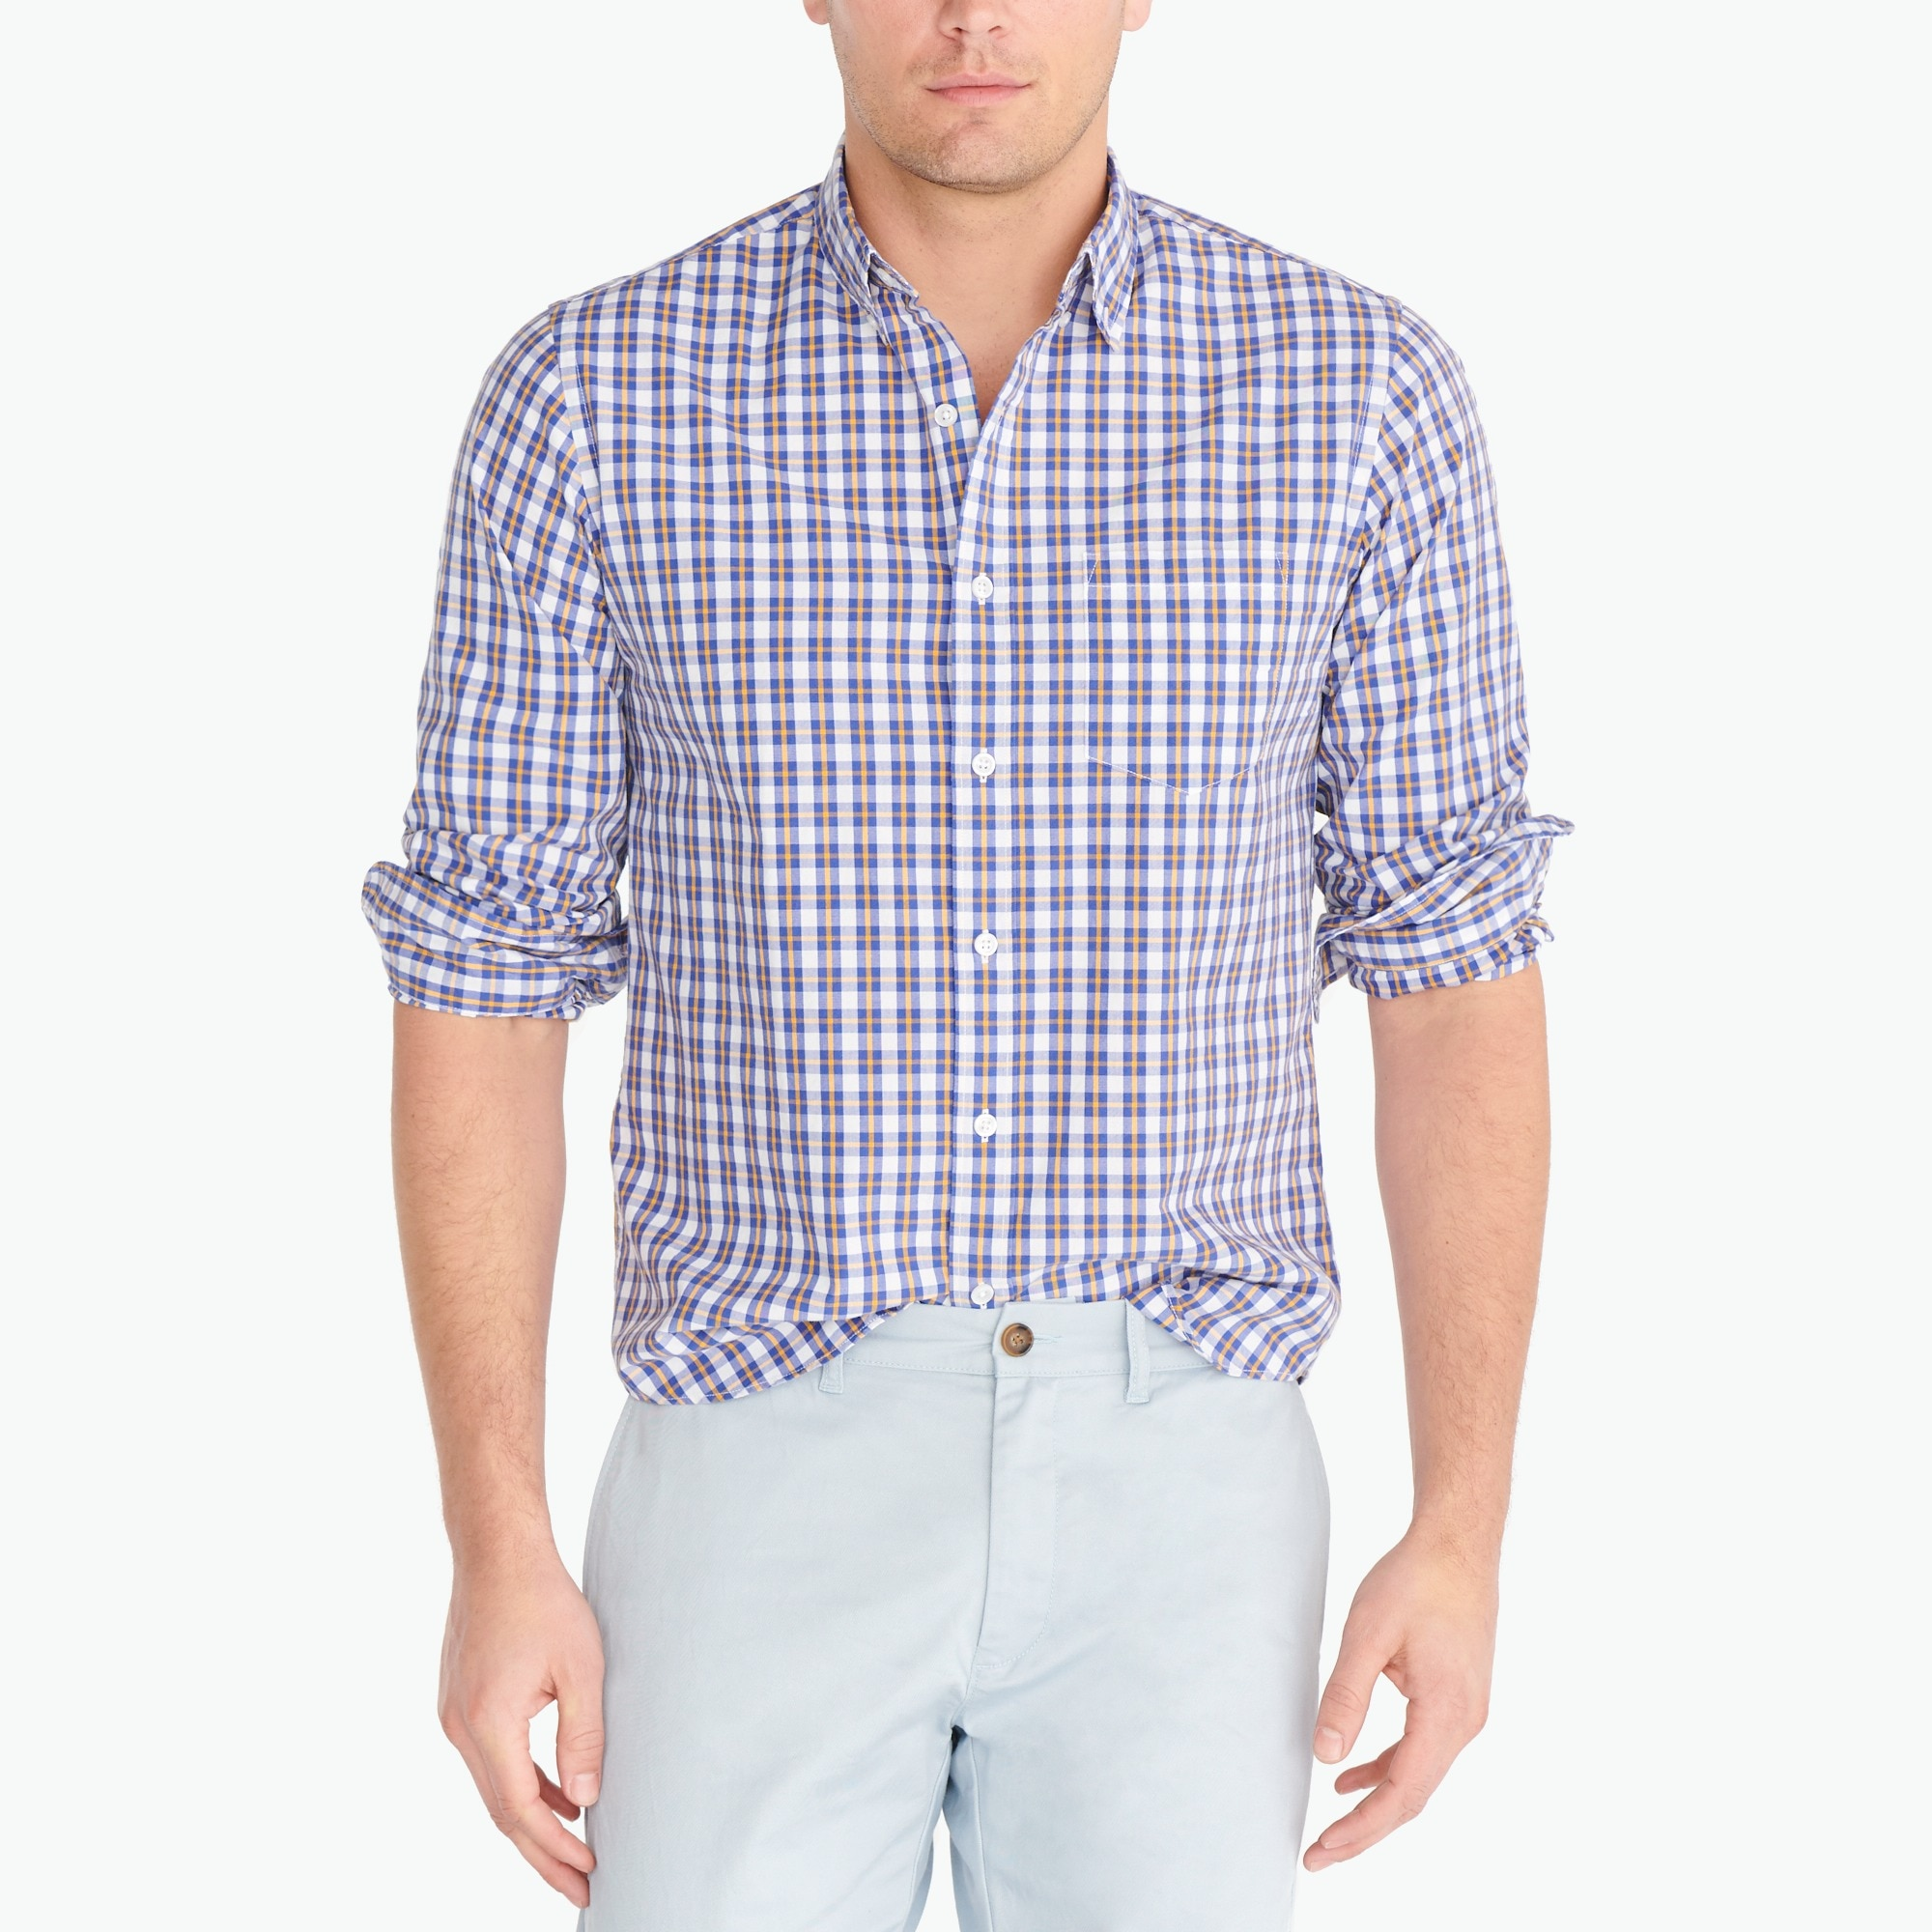 Image 1 for Washed shirt in medium plaid